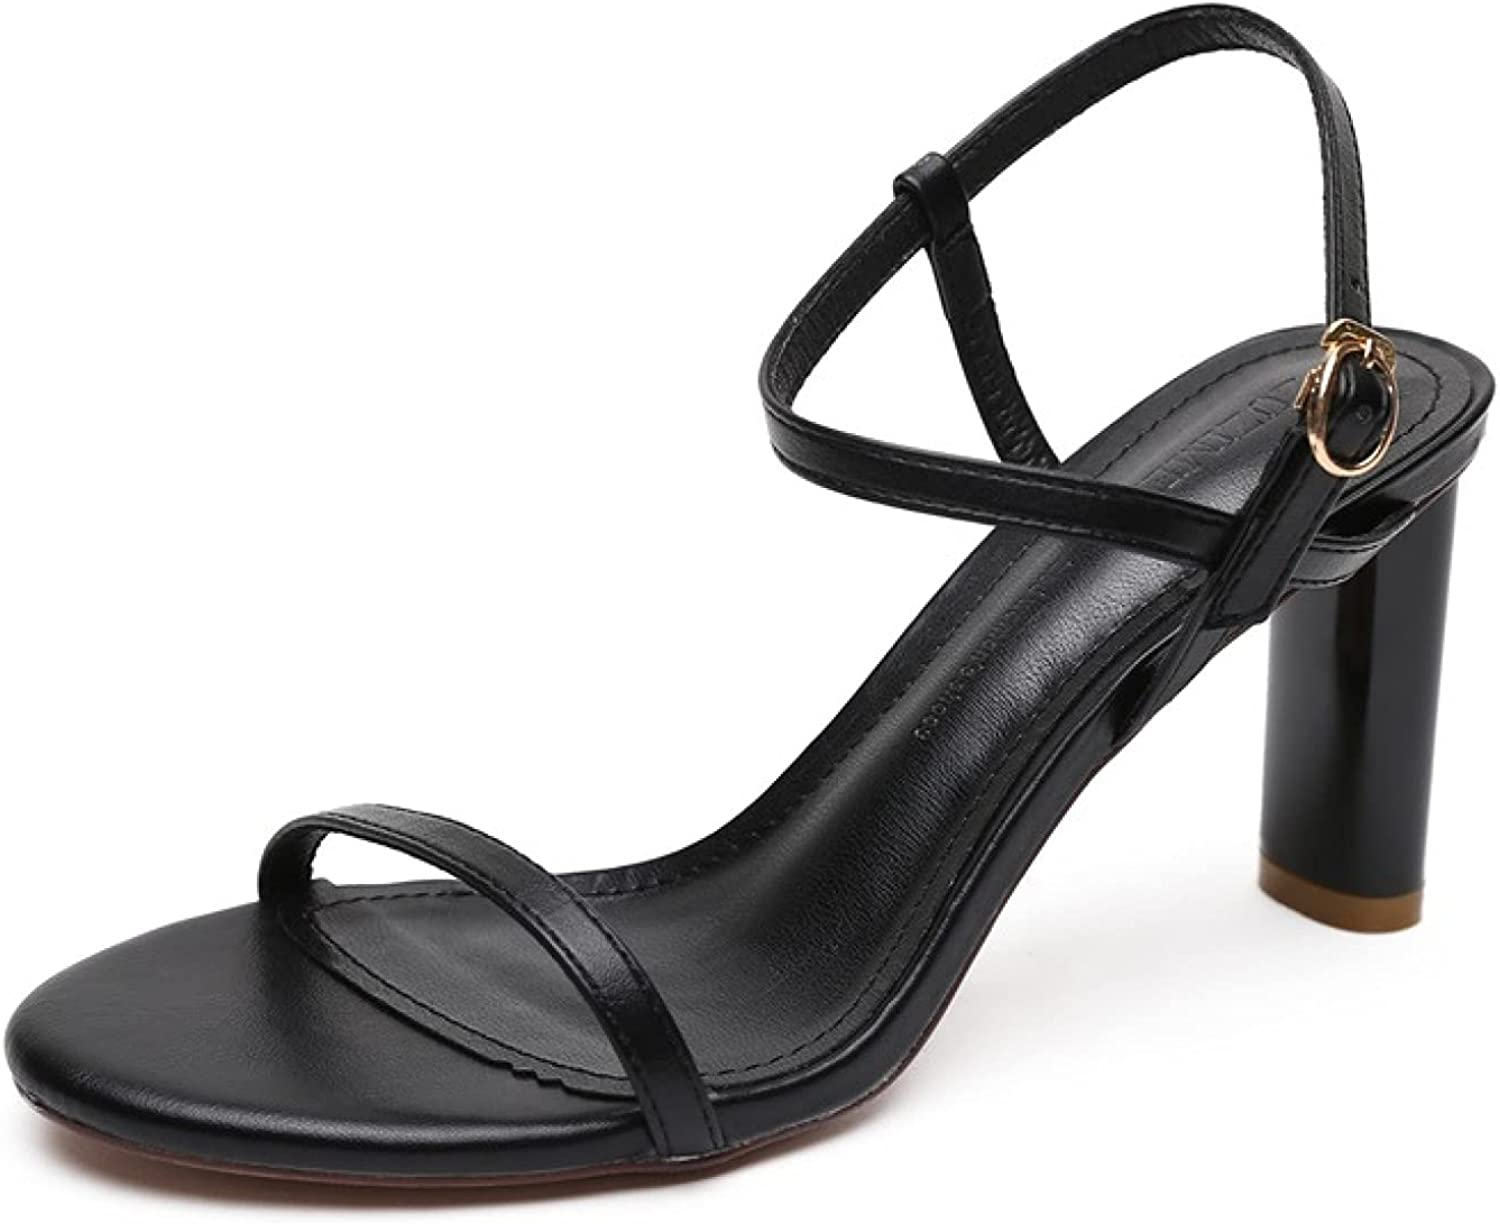 Woman Credence Sexy Ankle Strap Open Toe Heel Comfo [Alternative dealer] Sandals Chunky Buckle